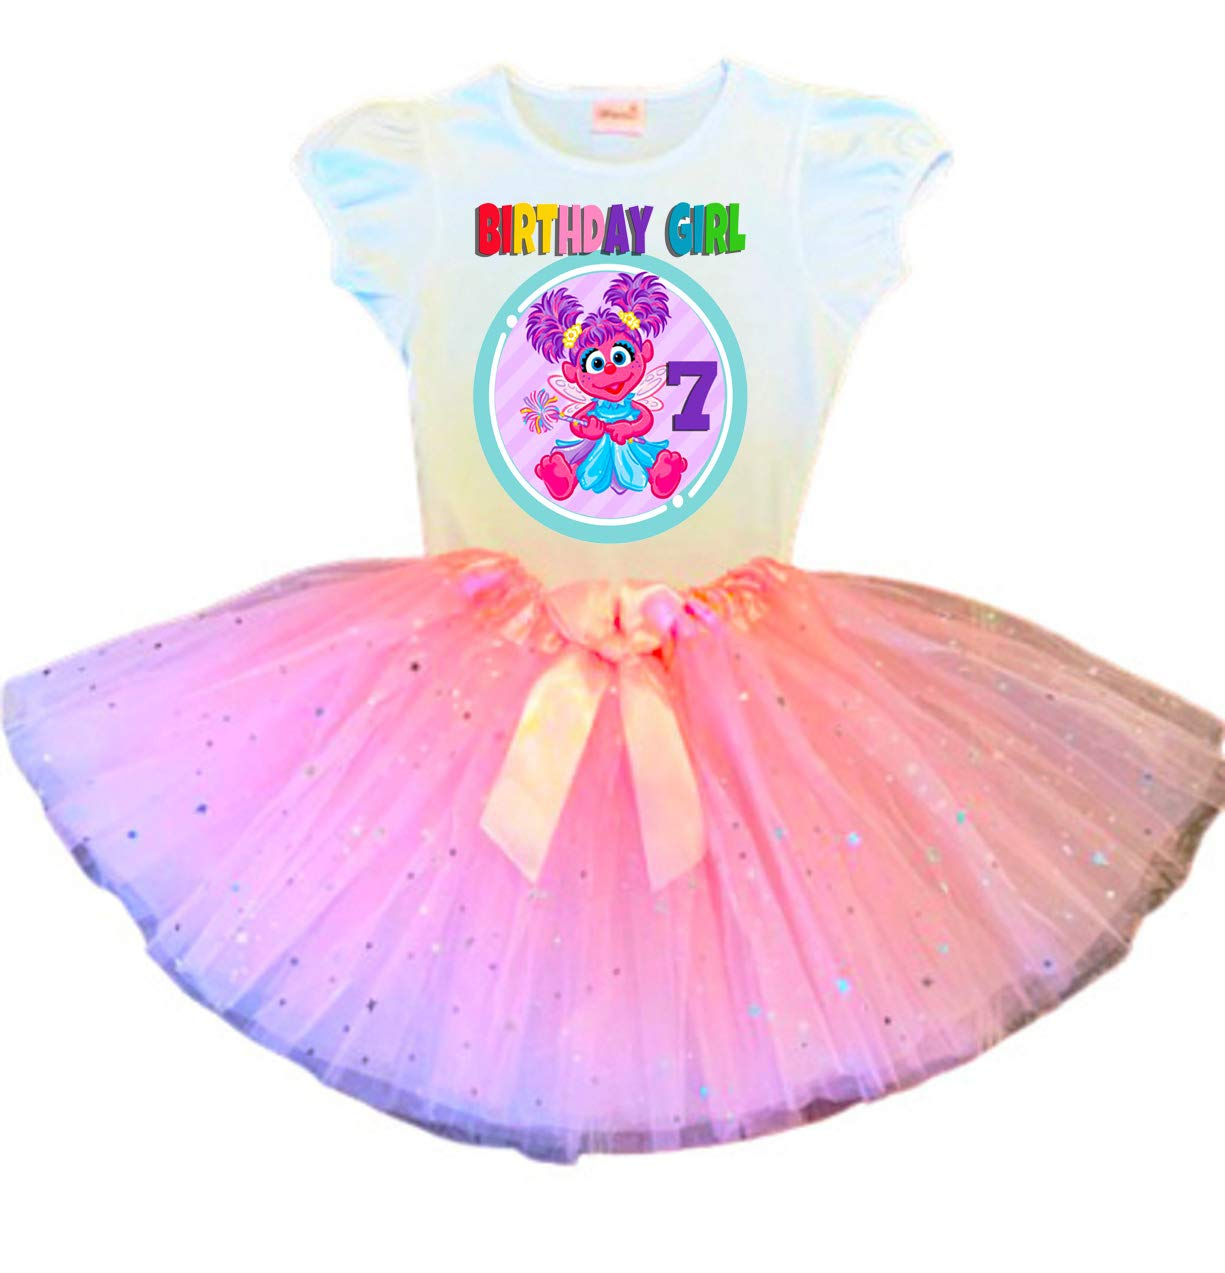 Abby Cadabby Birthday Tutu Animer and price revision 7th Pink Brand new Party Dress Ou